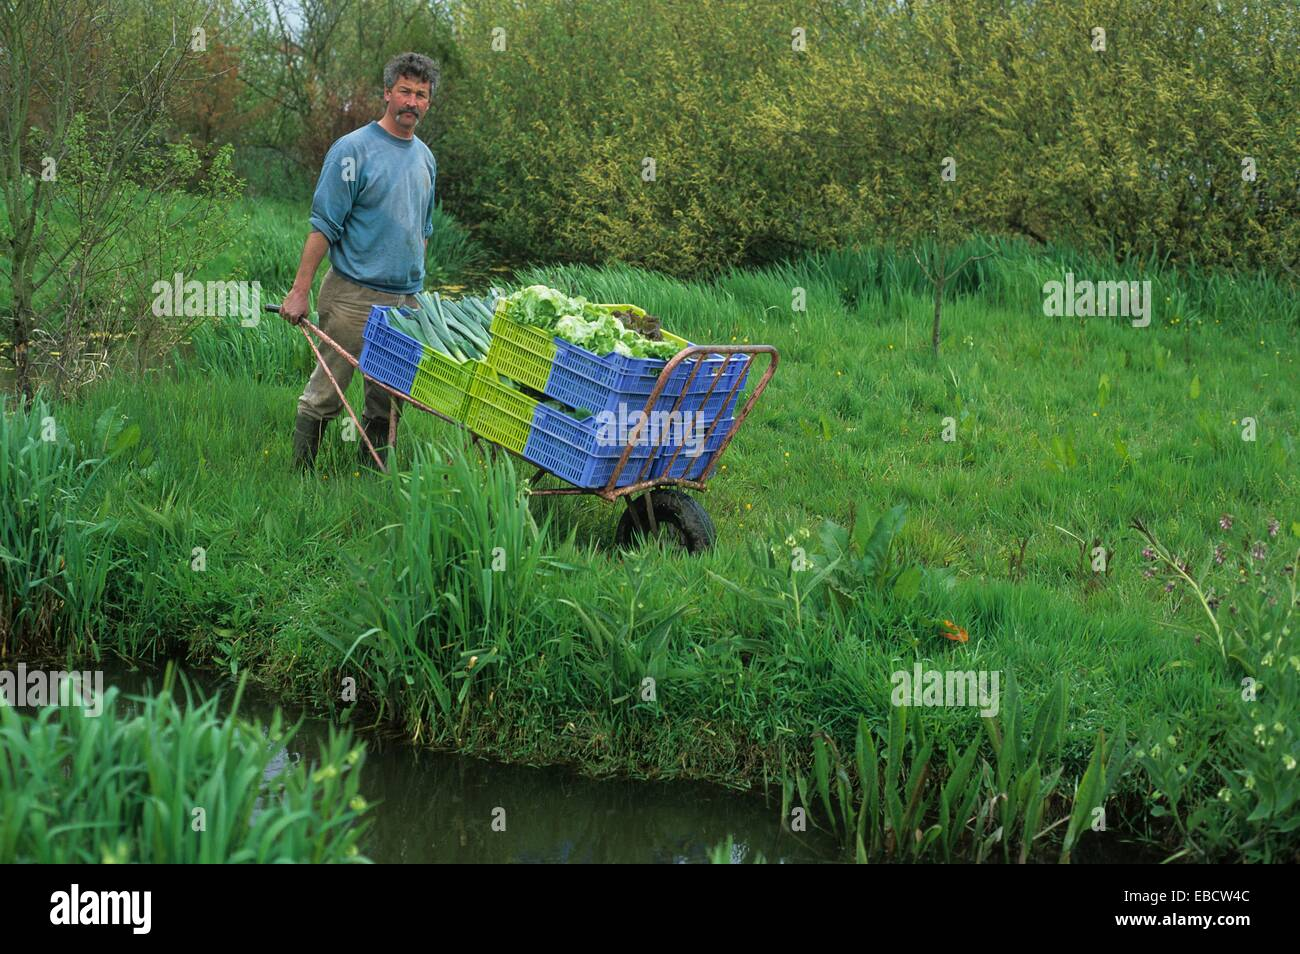 Market Gardening Producer In Organic Farming Hortillonnages Amiens Somme  Department Picardy Region France Europe